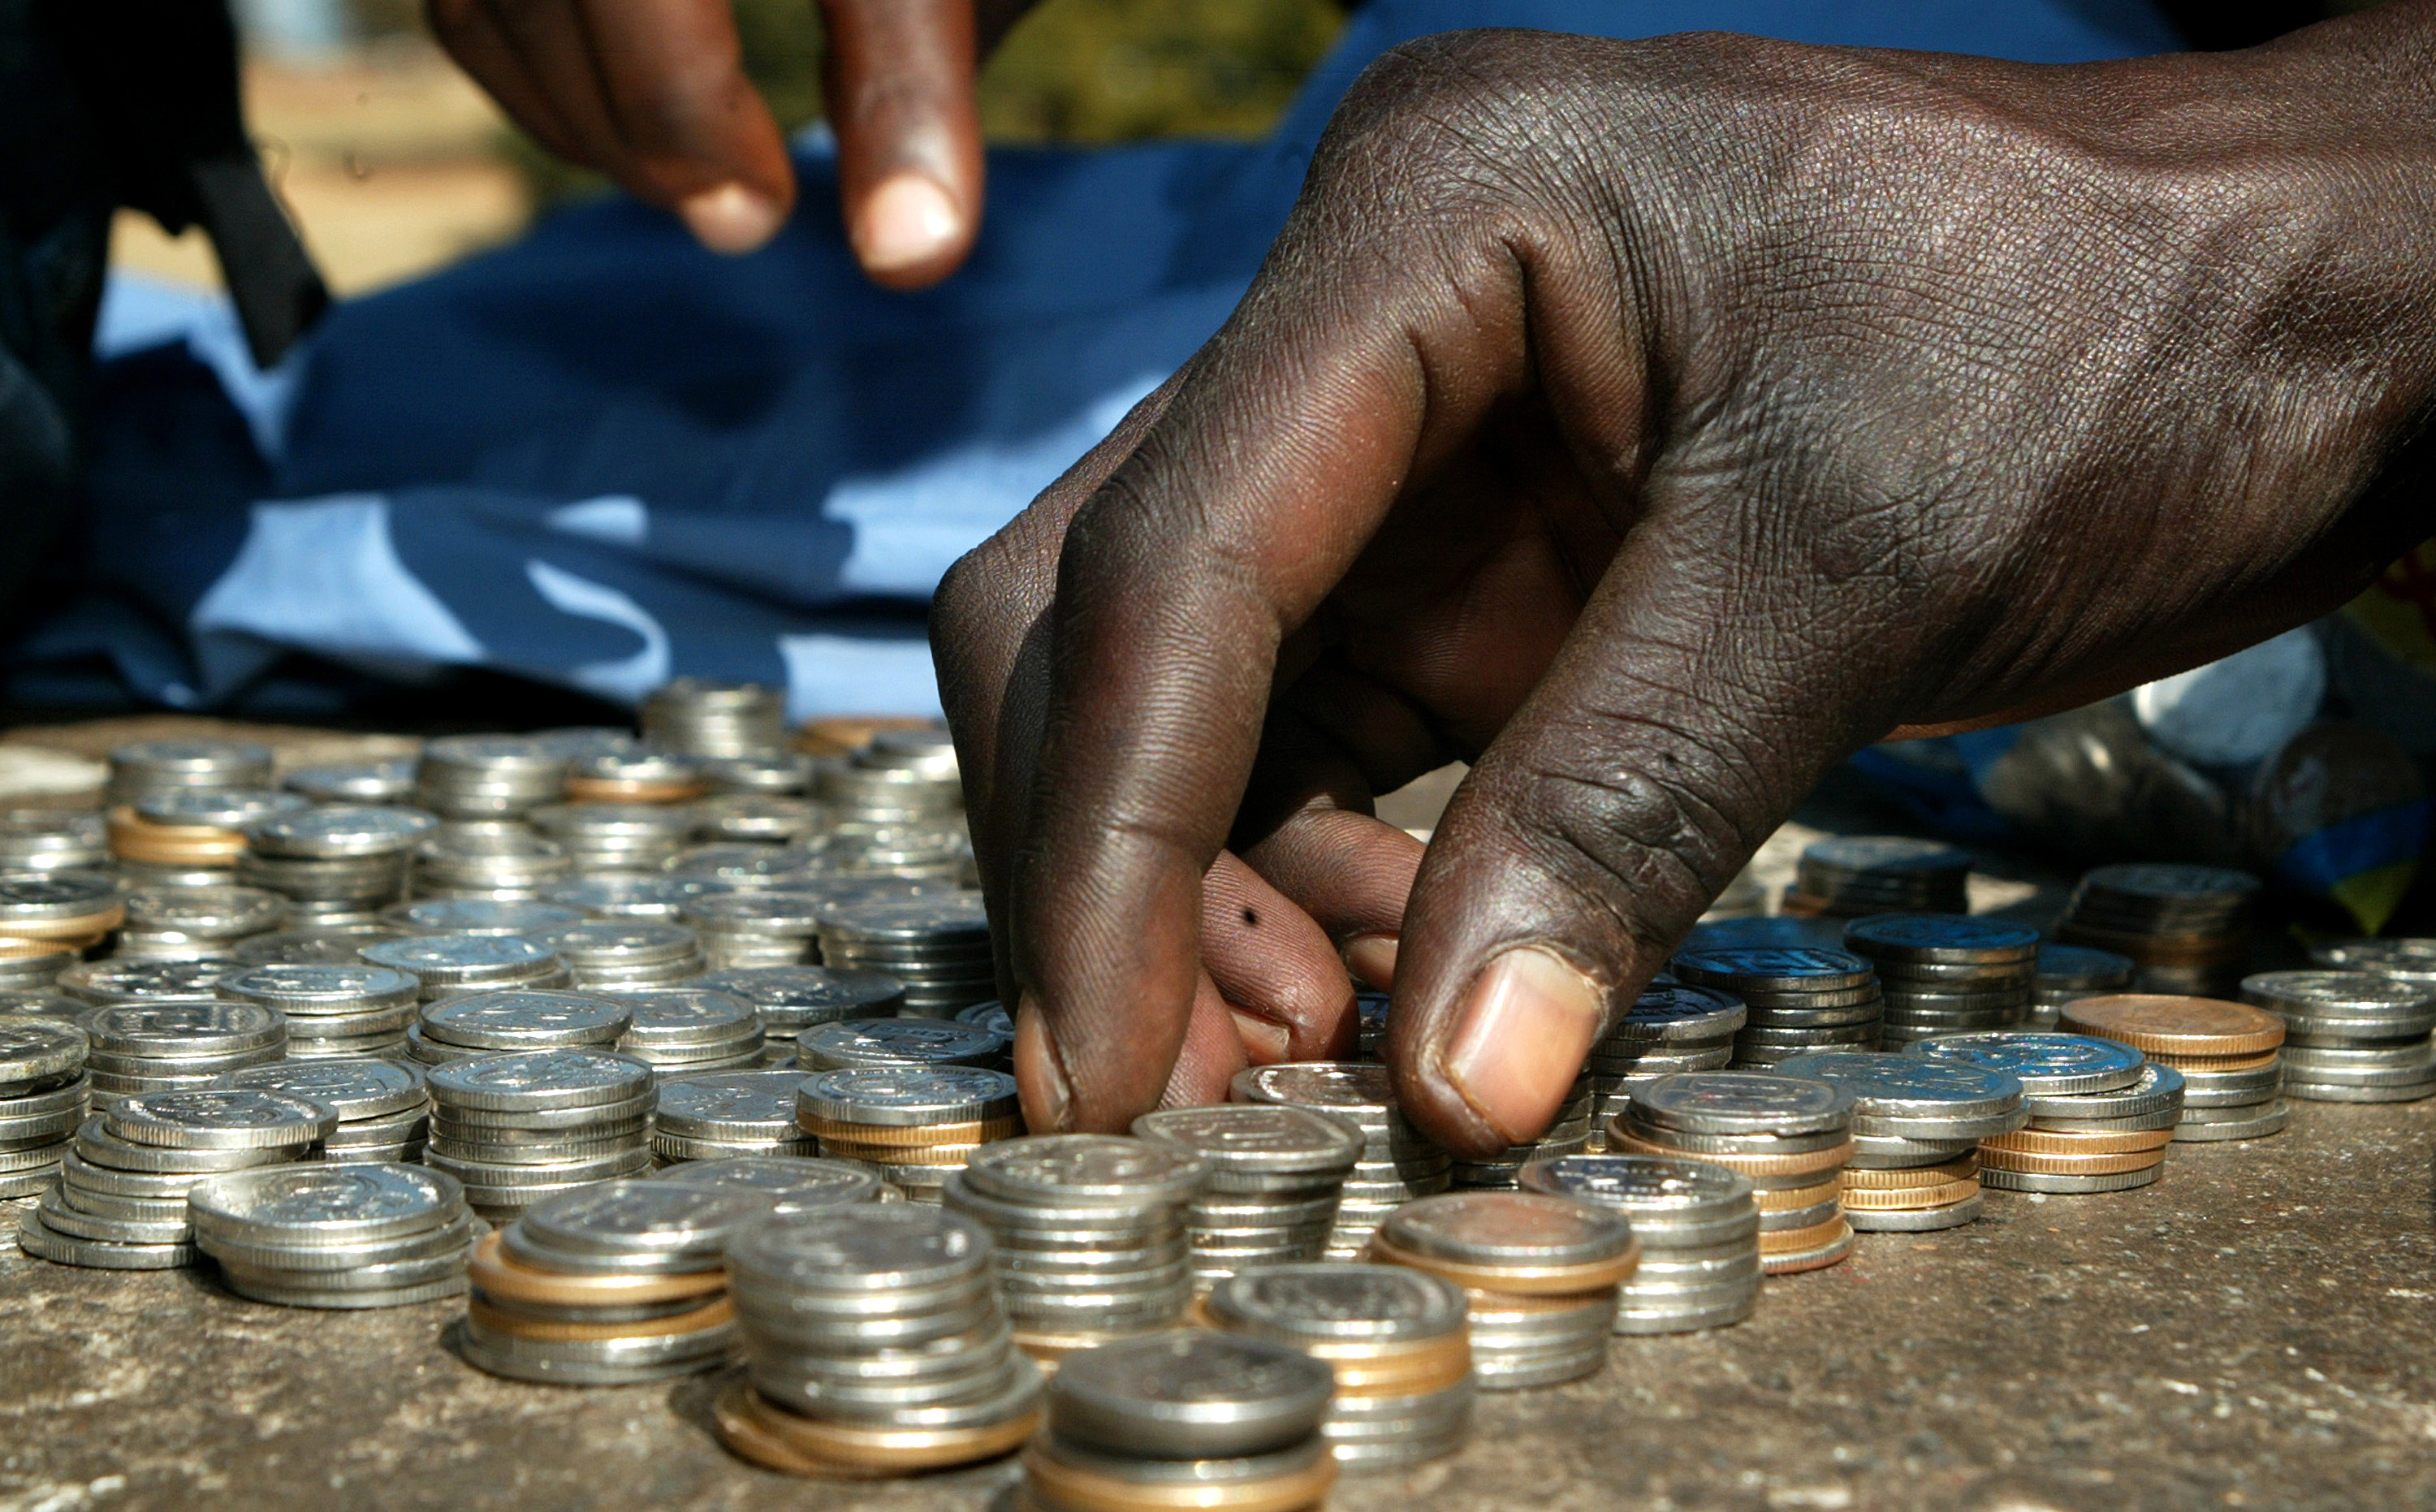 A coin vendor counts his coins on June 27, 2012 in Harare